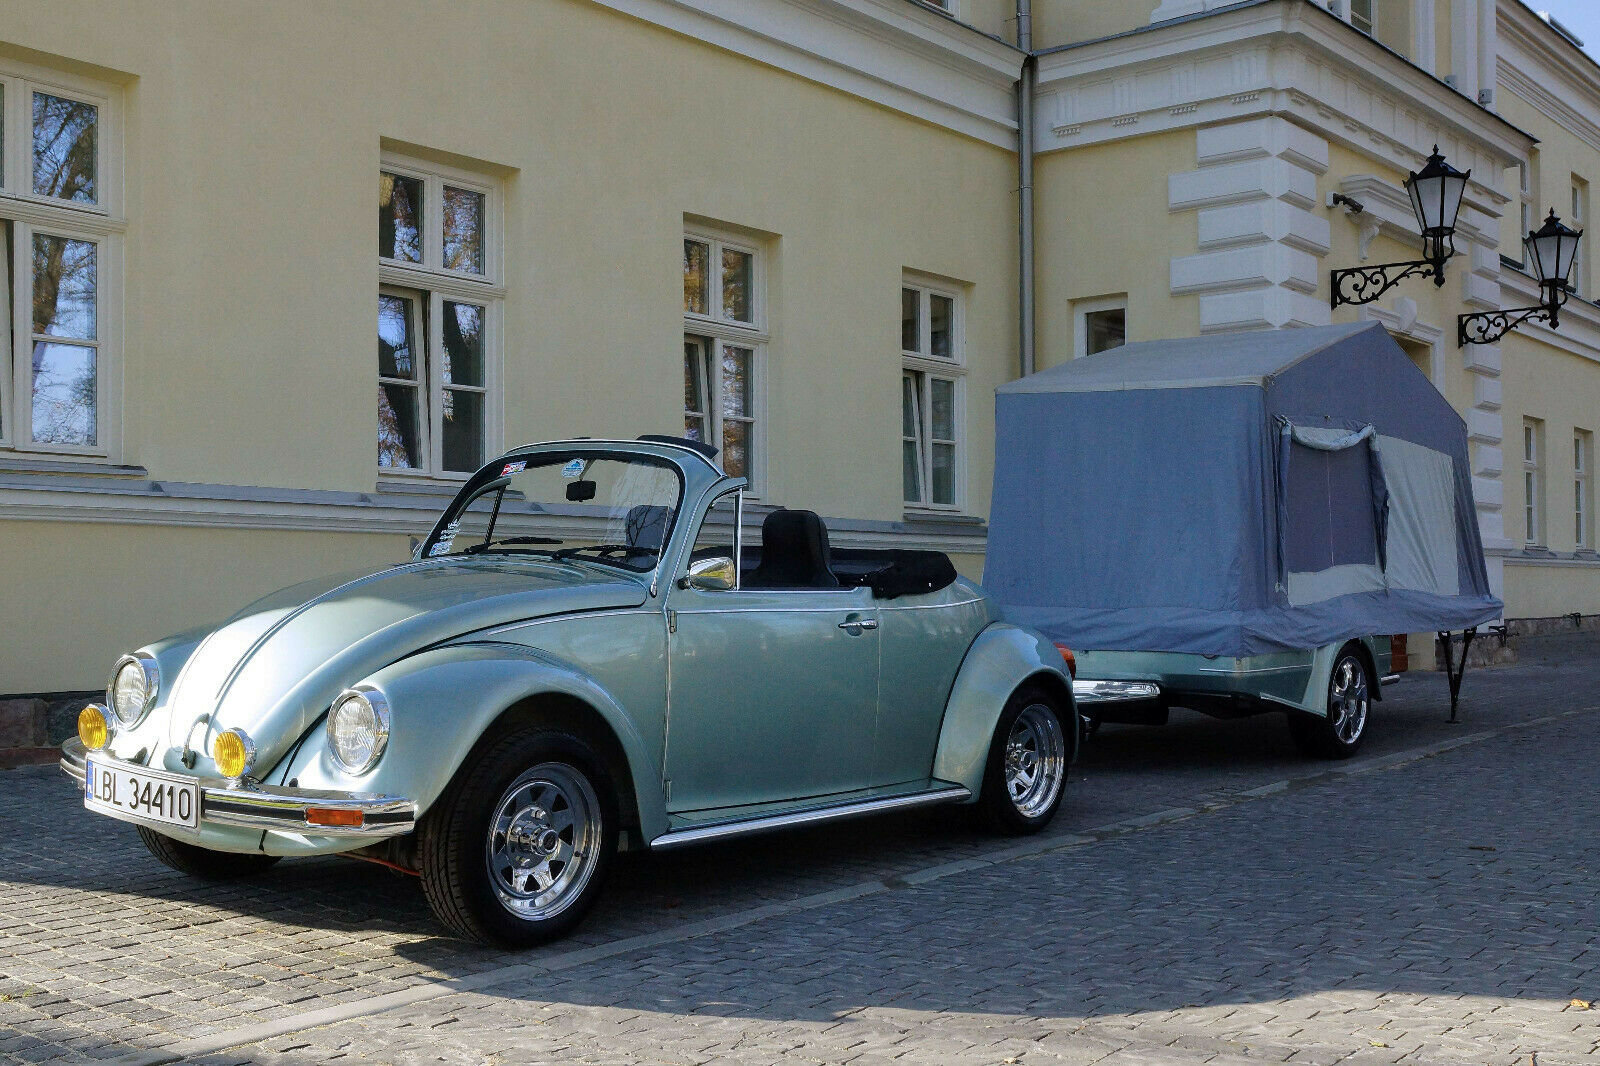 1984 Volkswagen Beetle Cabrio + tent trailer For Sale (picture 1 of 6)